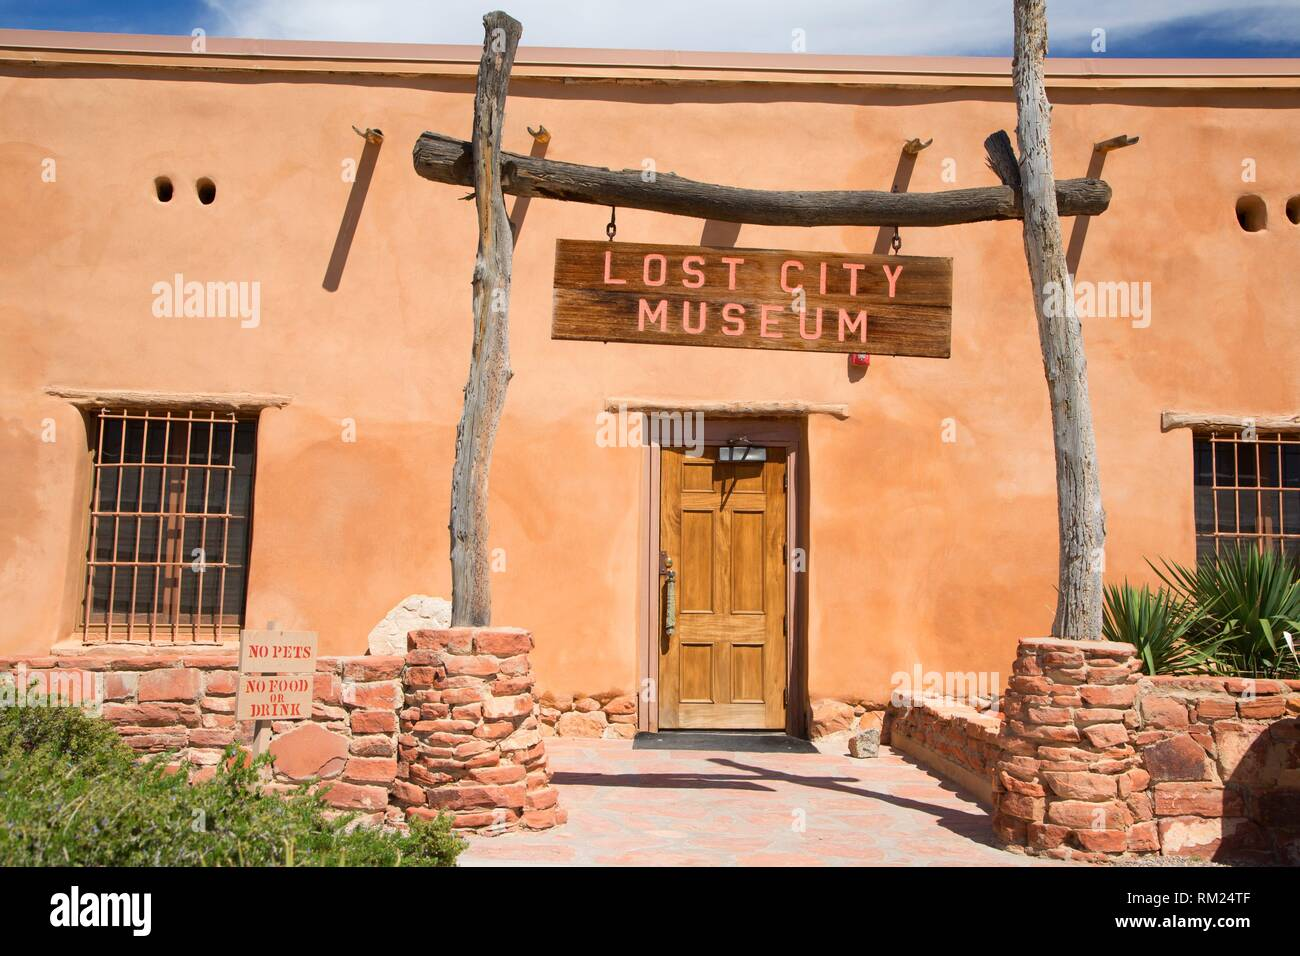 Eingang, Lost City Museum, Overton, Nevada. Stockbild